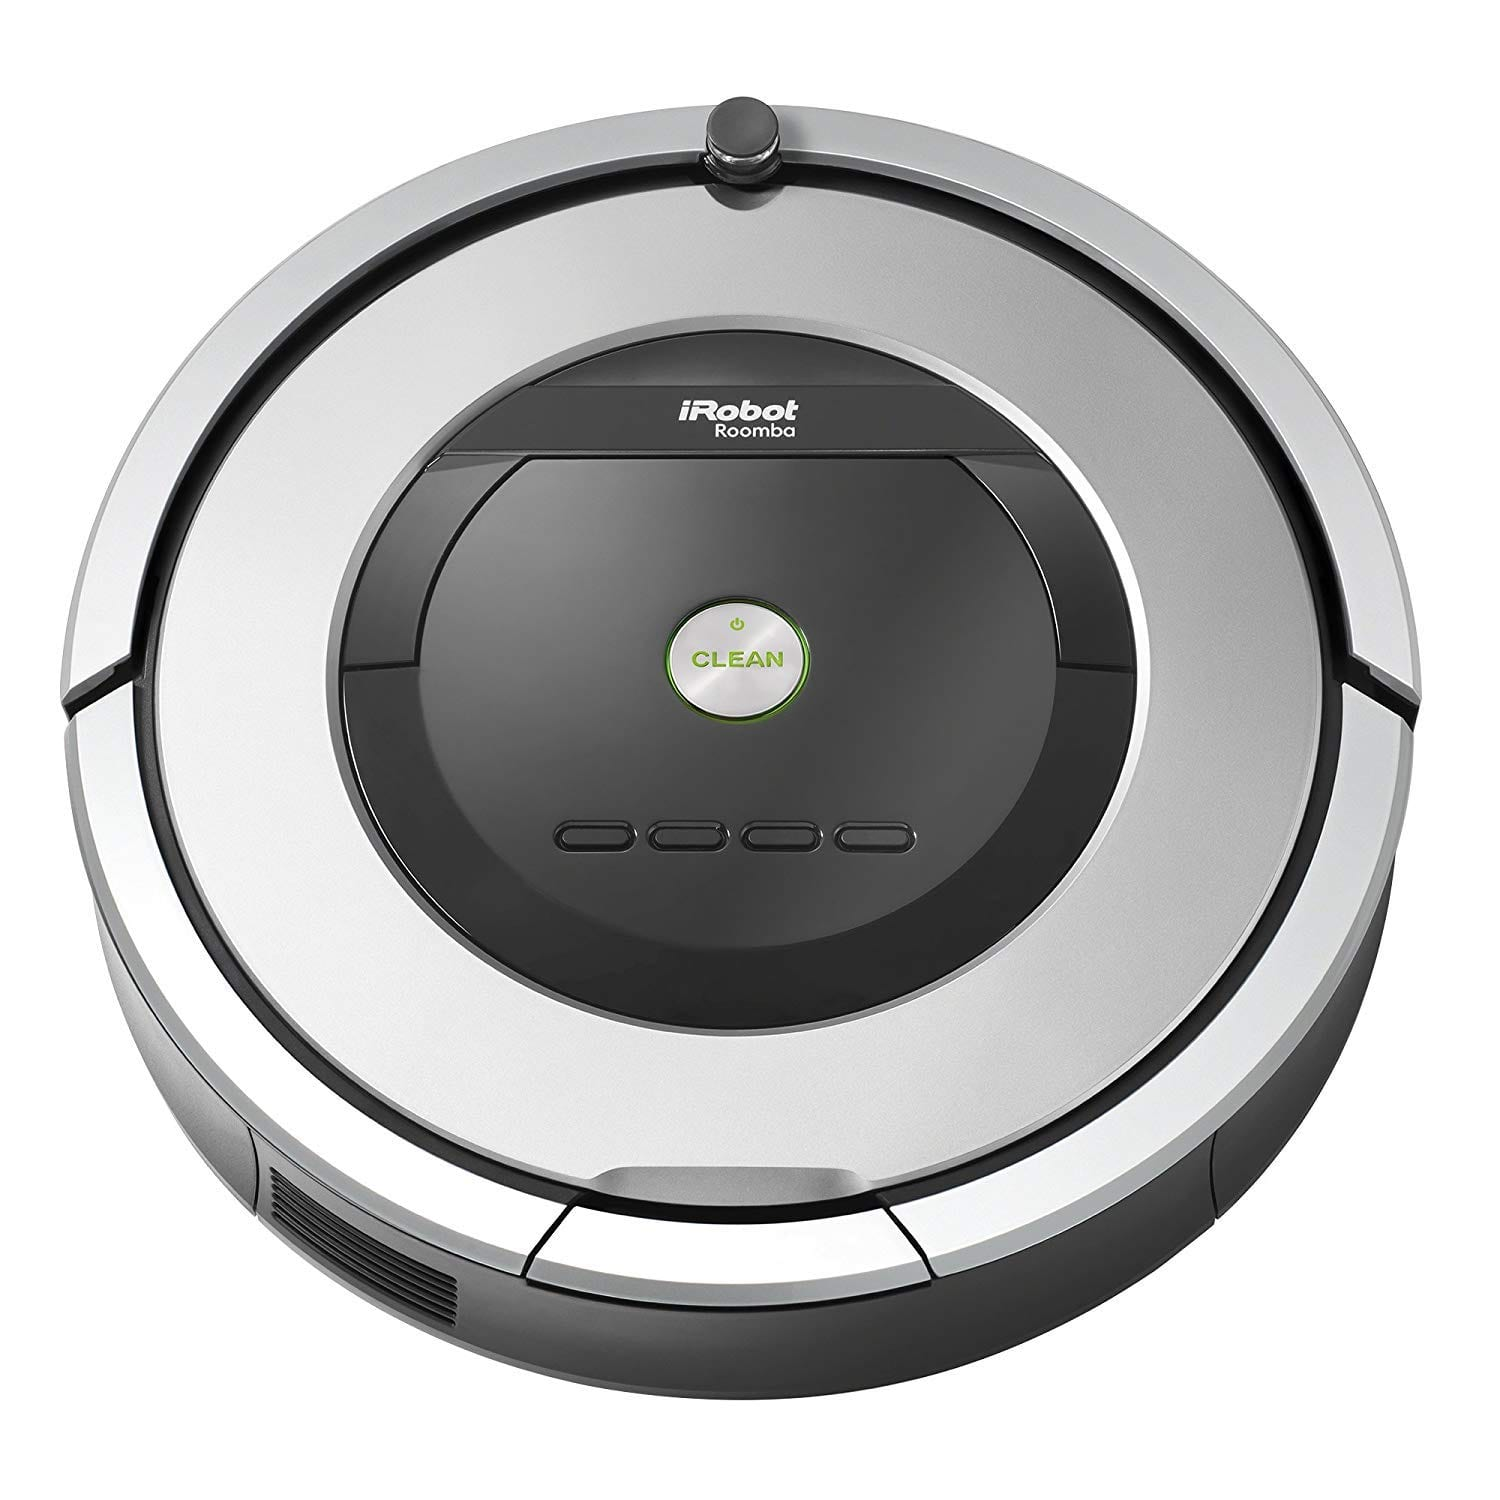 iRobot Roomba 860 Robotic Vacuum with Virtual Wall Barrier and Scheduling Feature (Renewed) $269.99 at Amazon